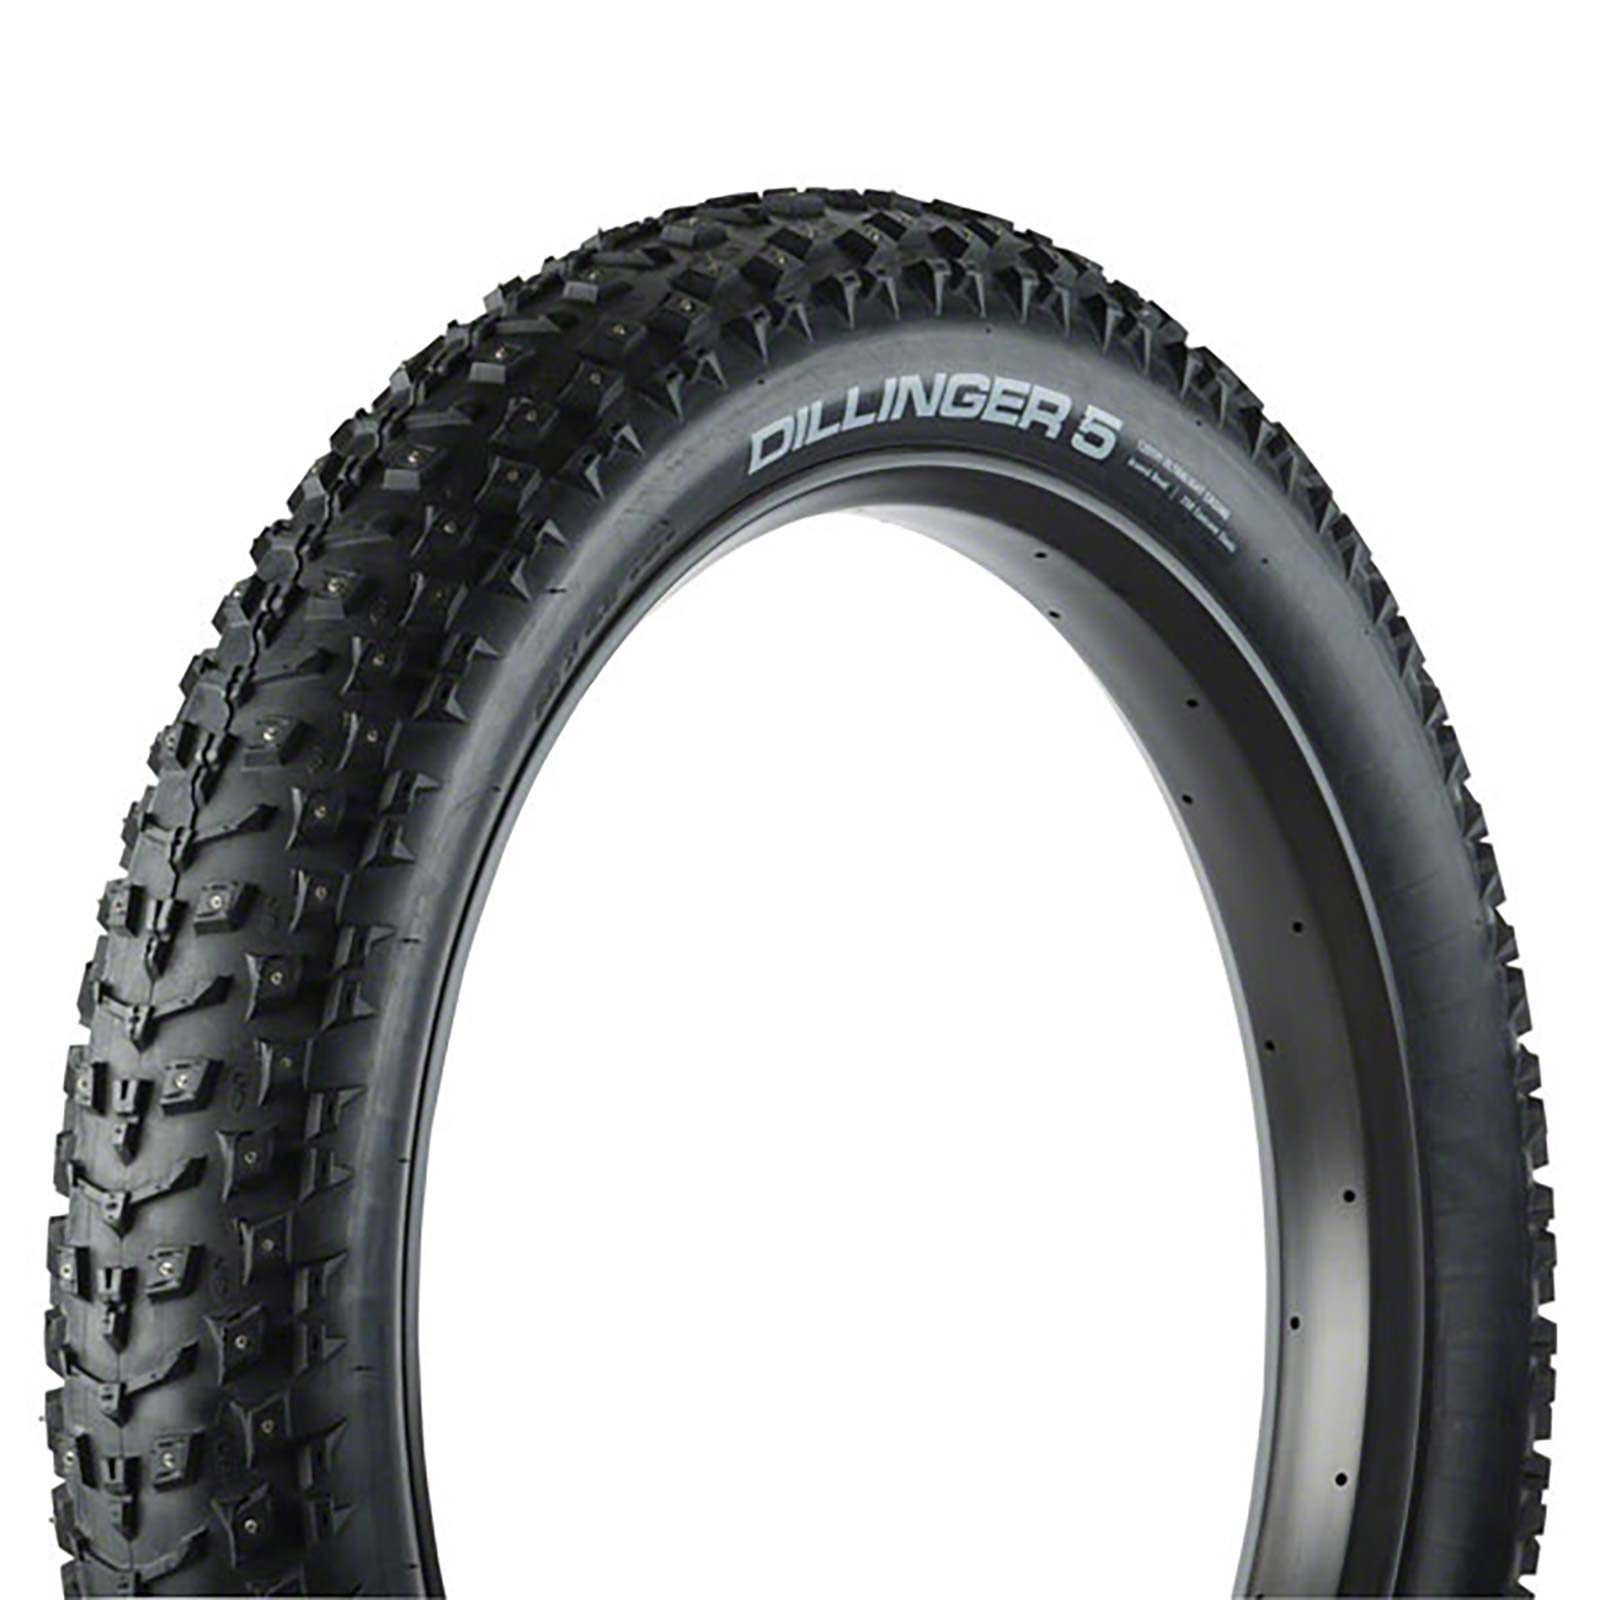 45NRTH Dillinger 5 Custom Studdable Fat-bike Tire 26 x 4.8 - Folding - 120tpi